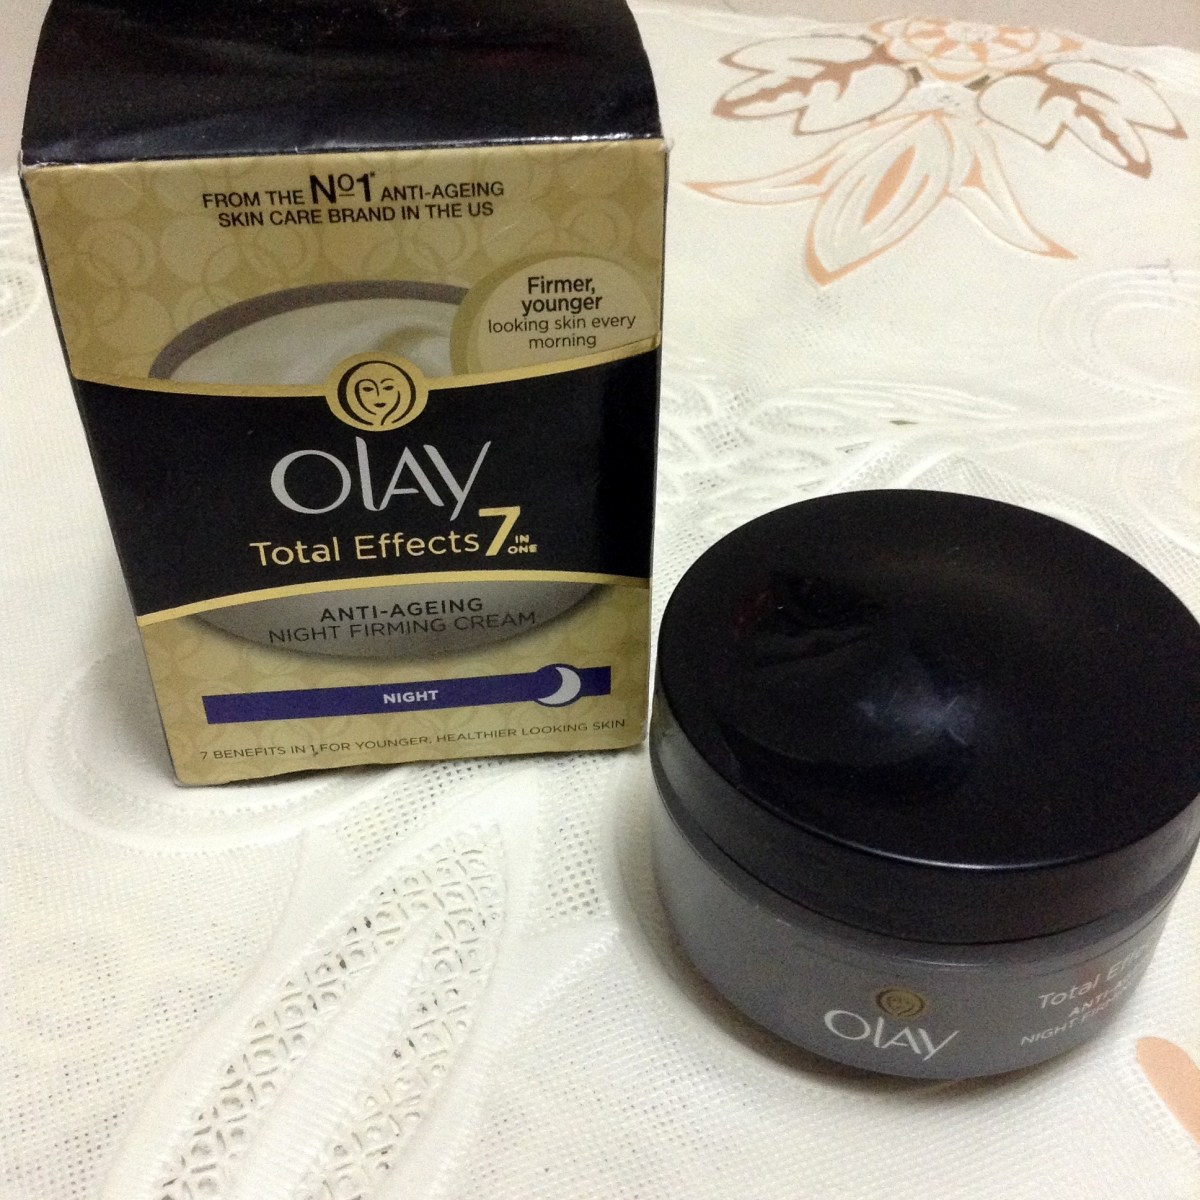 Olay Total Effects 7 in one Anti Aging Firming Night Cream